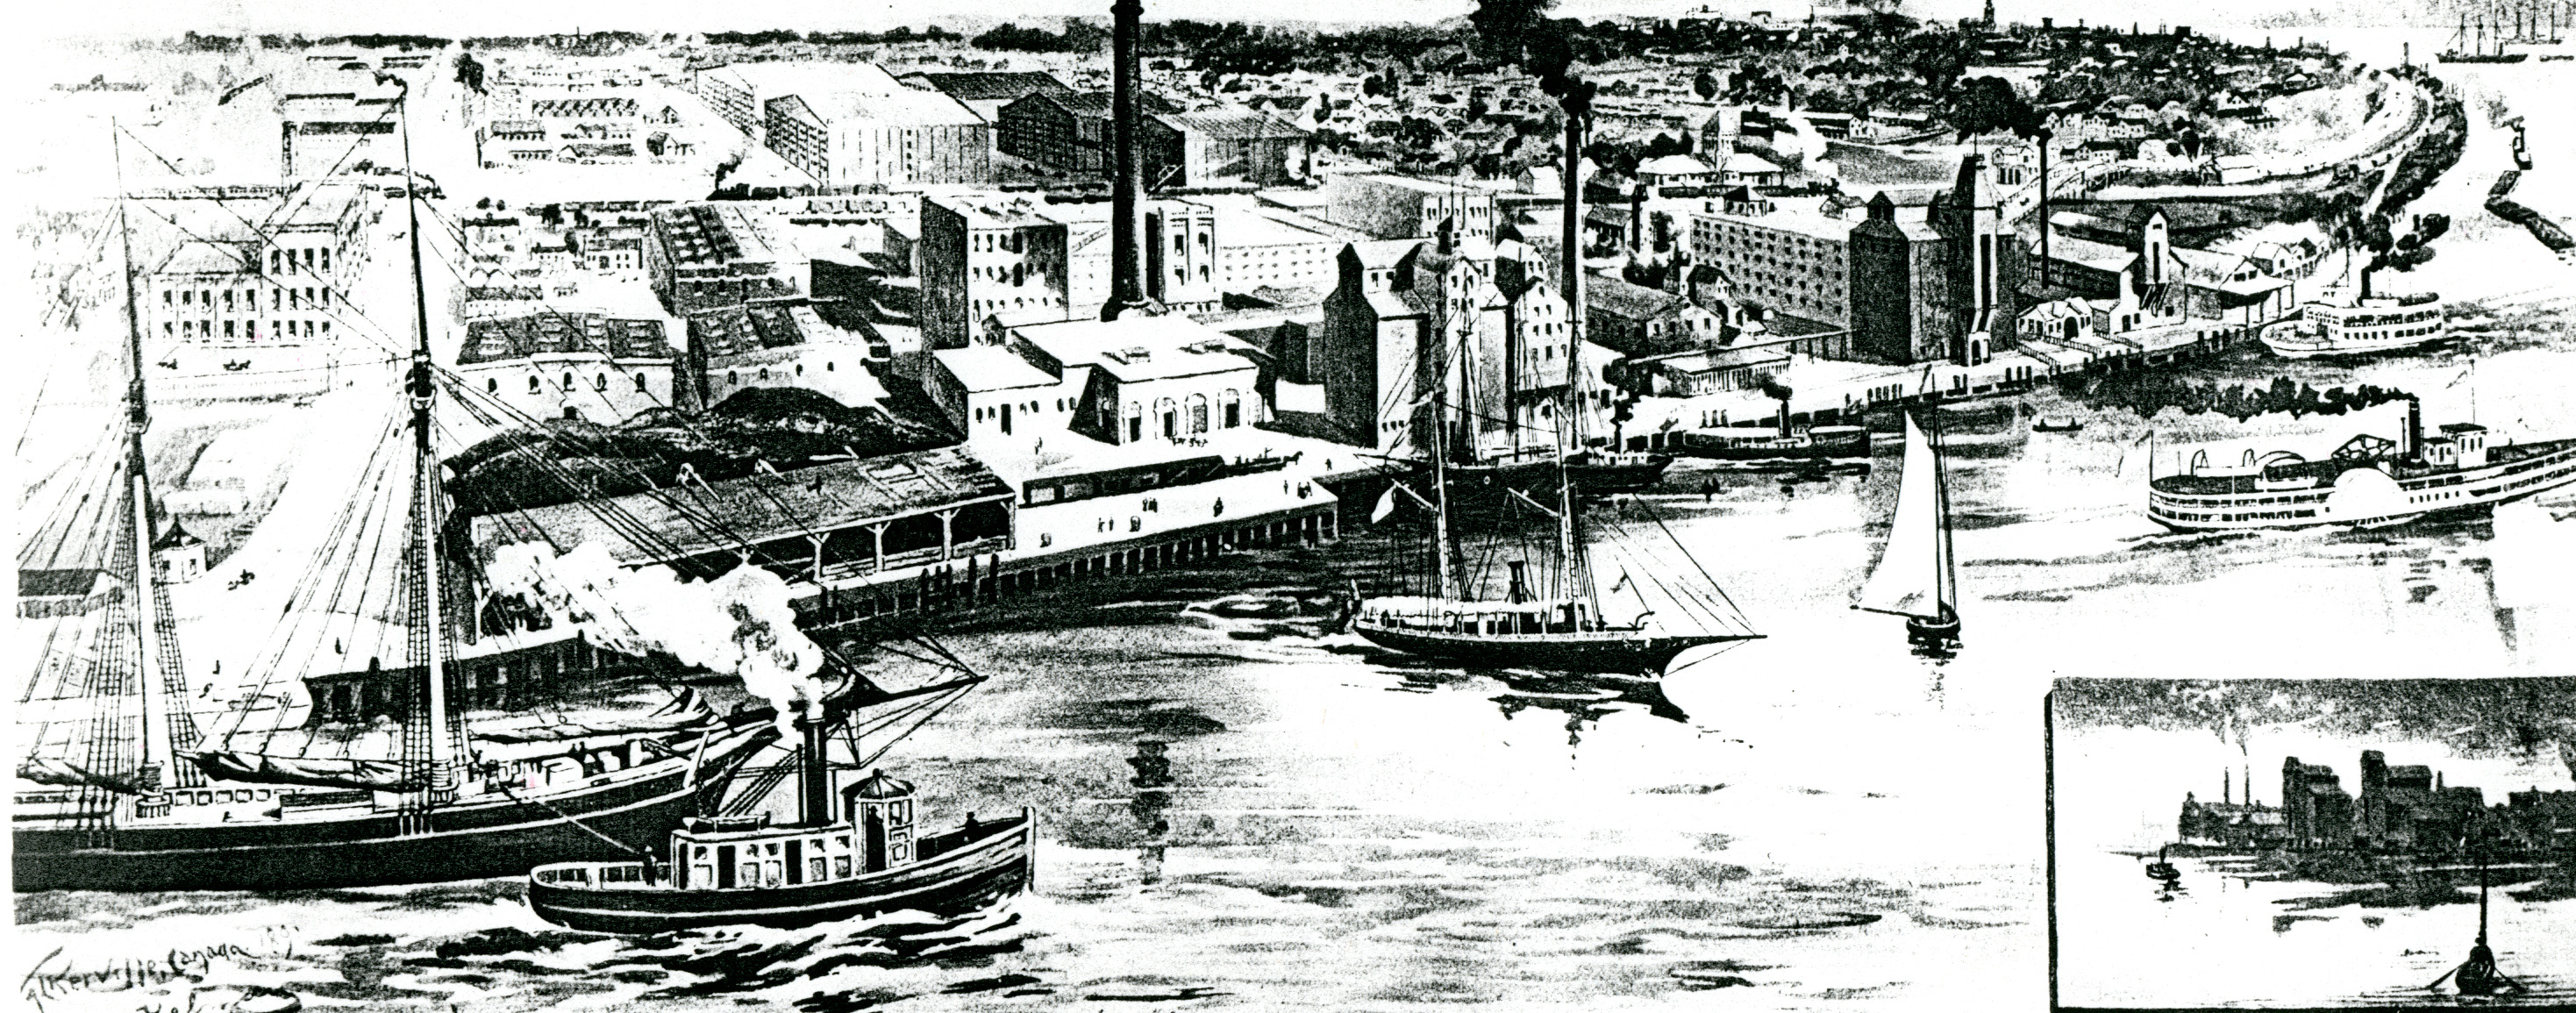 Historical drawing of the Walkerville riverfront